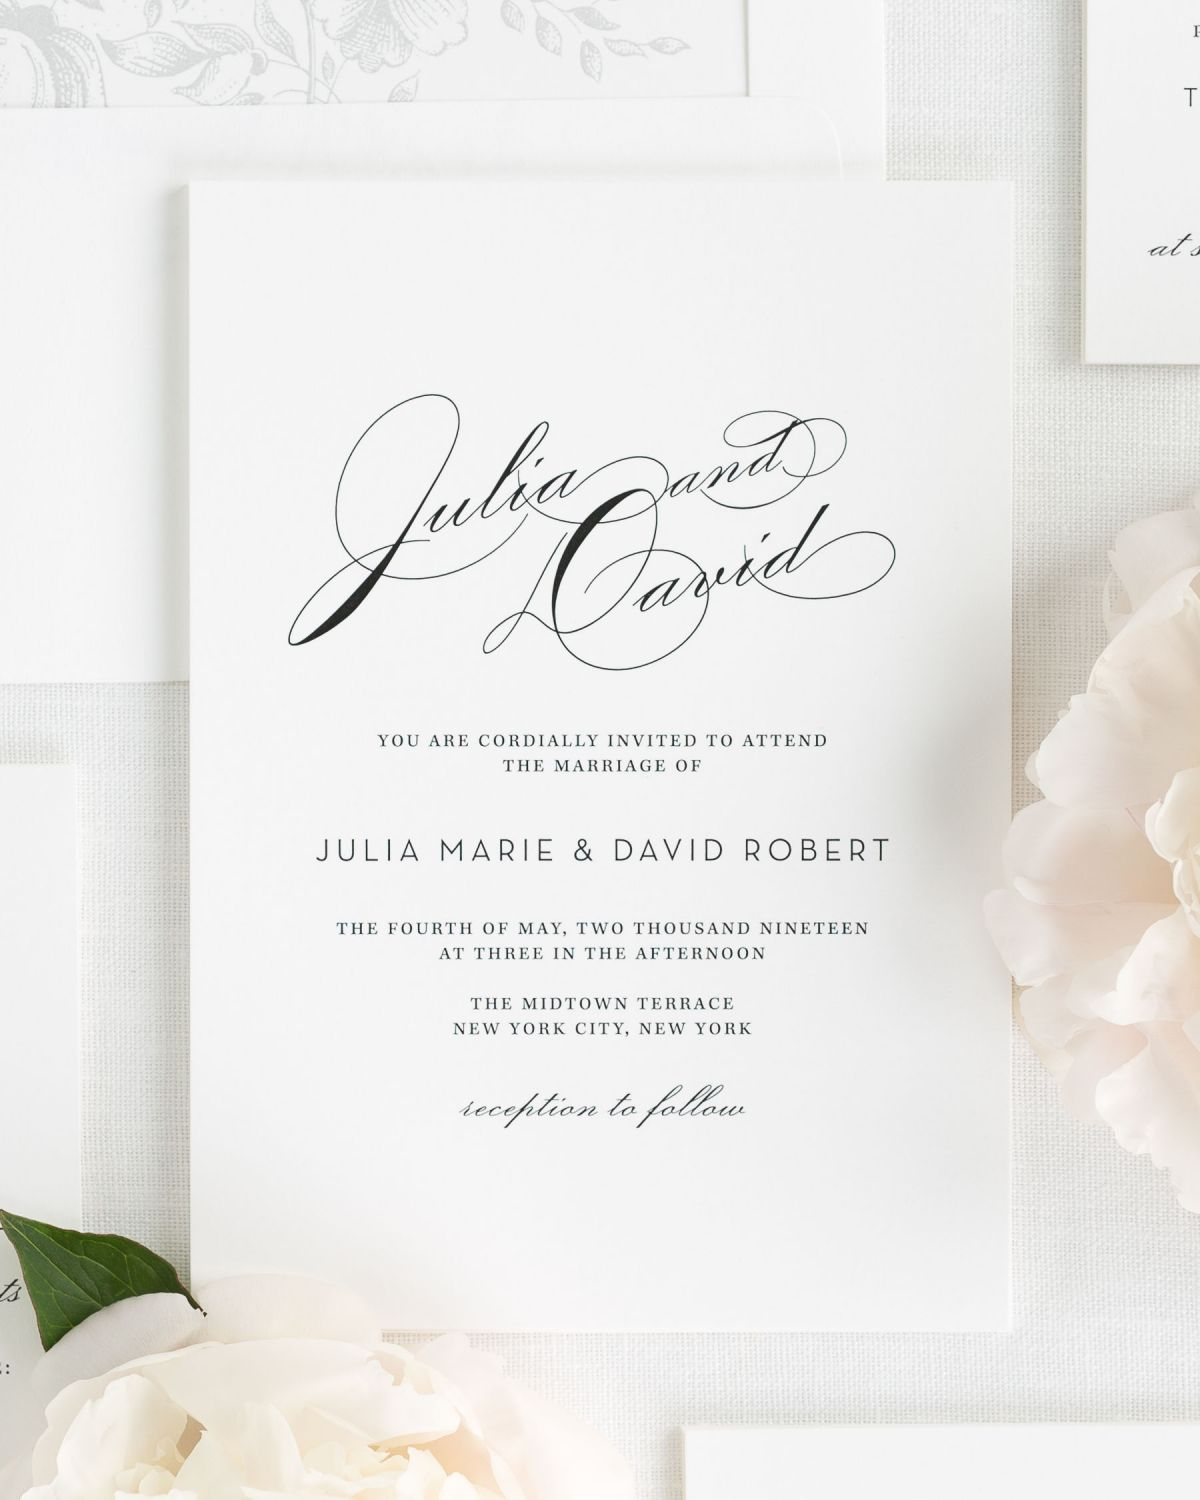 vintage wedding invitations with big names - Wedding Invitations Vintage